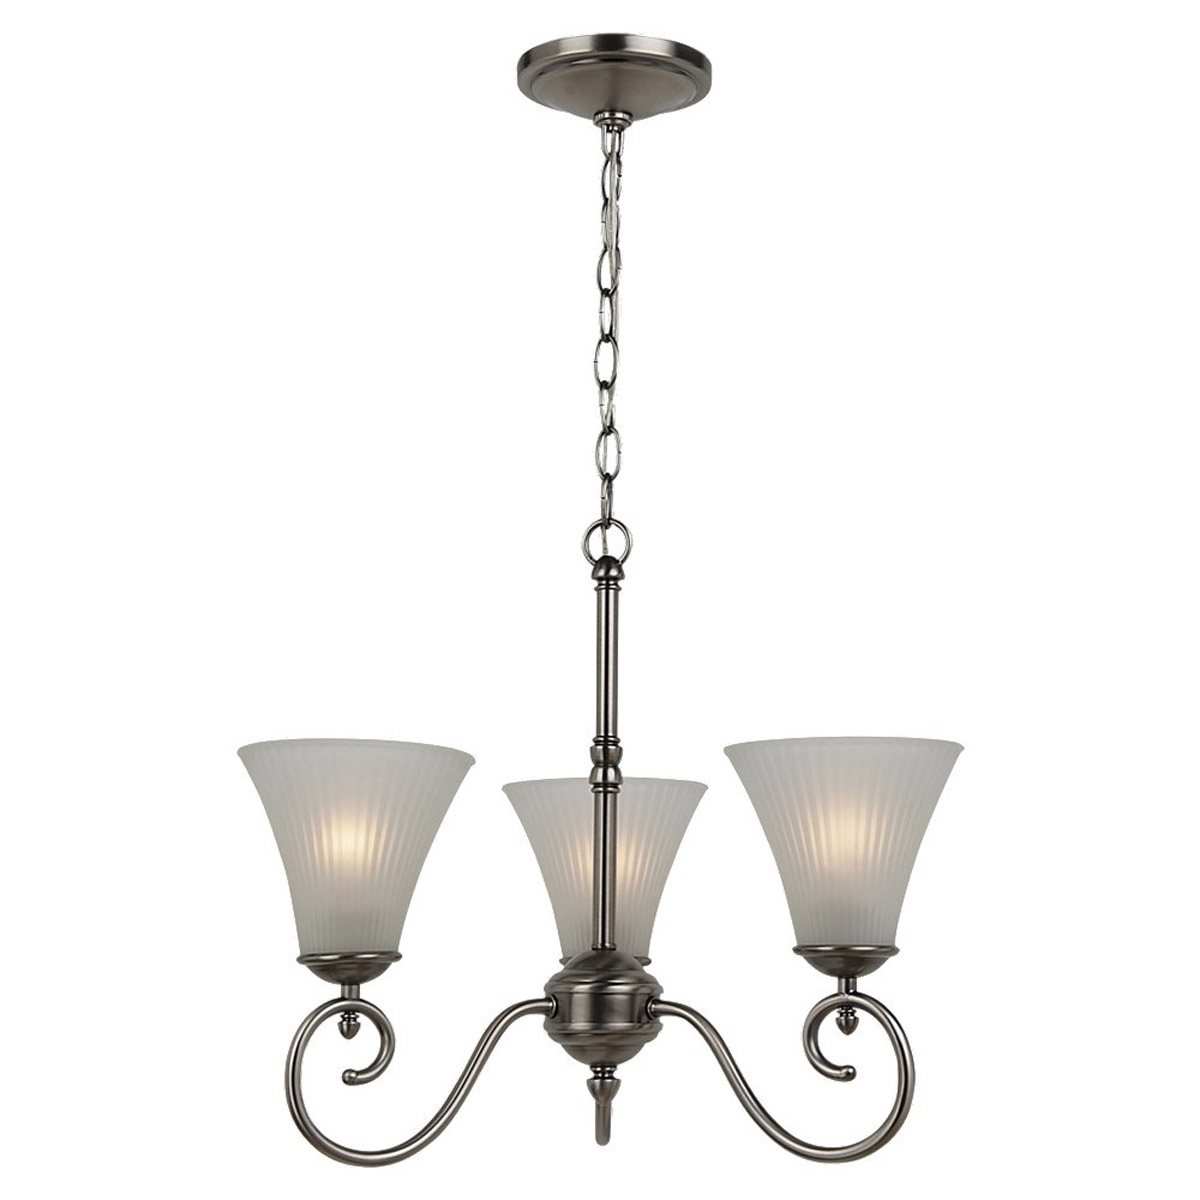 Sea Gull Lighting Joliet 3 Light Chandelier in Antique Brushed Nickel 31935-965